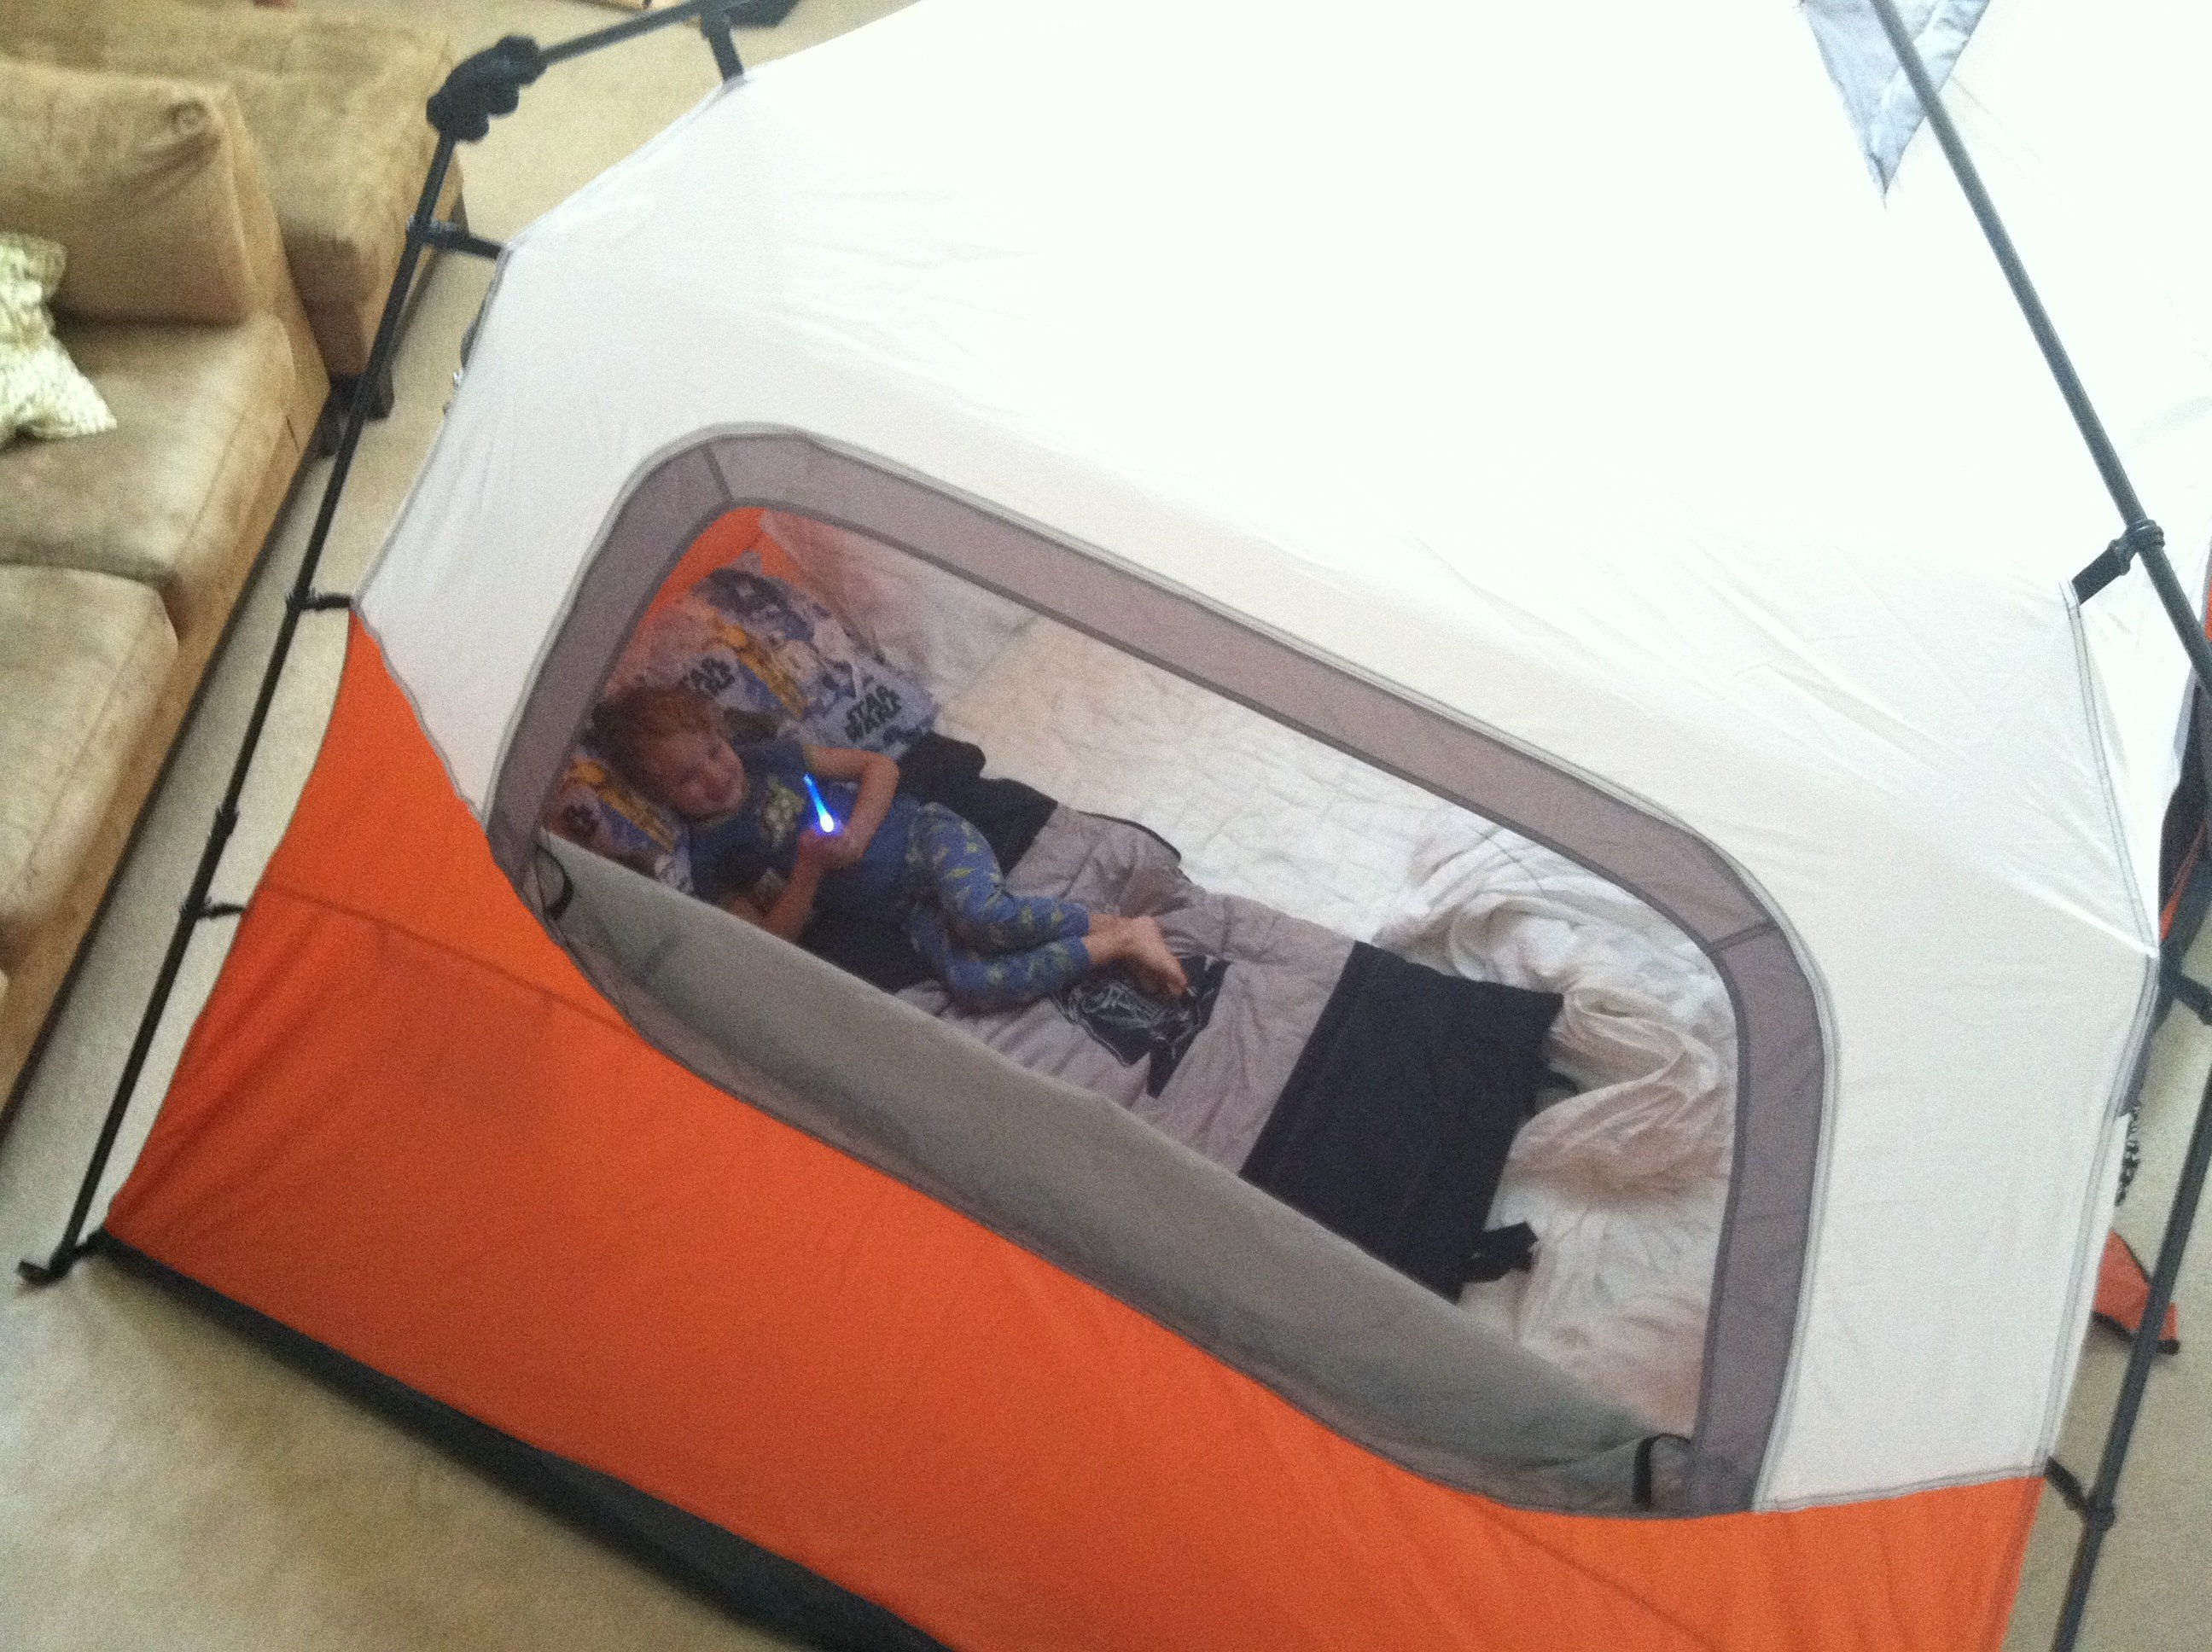 We ... & Living Room Camp-out - Paging Supermom